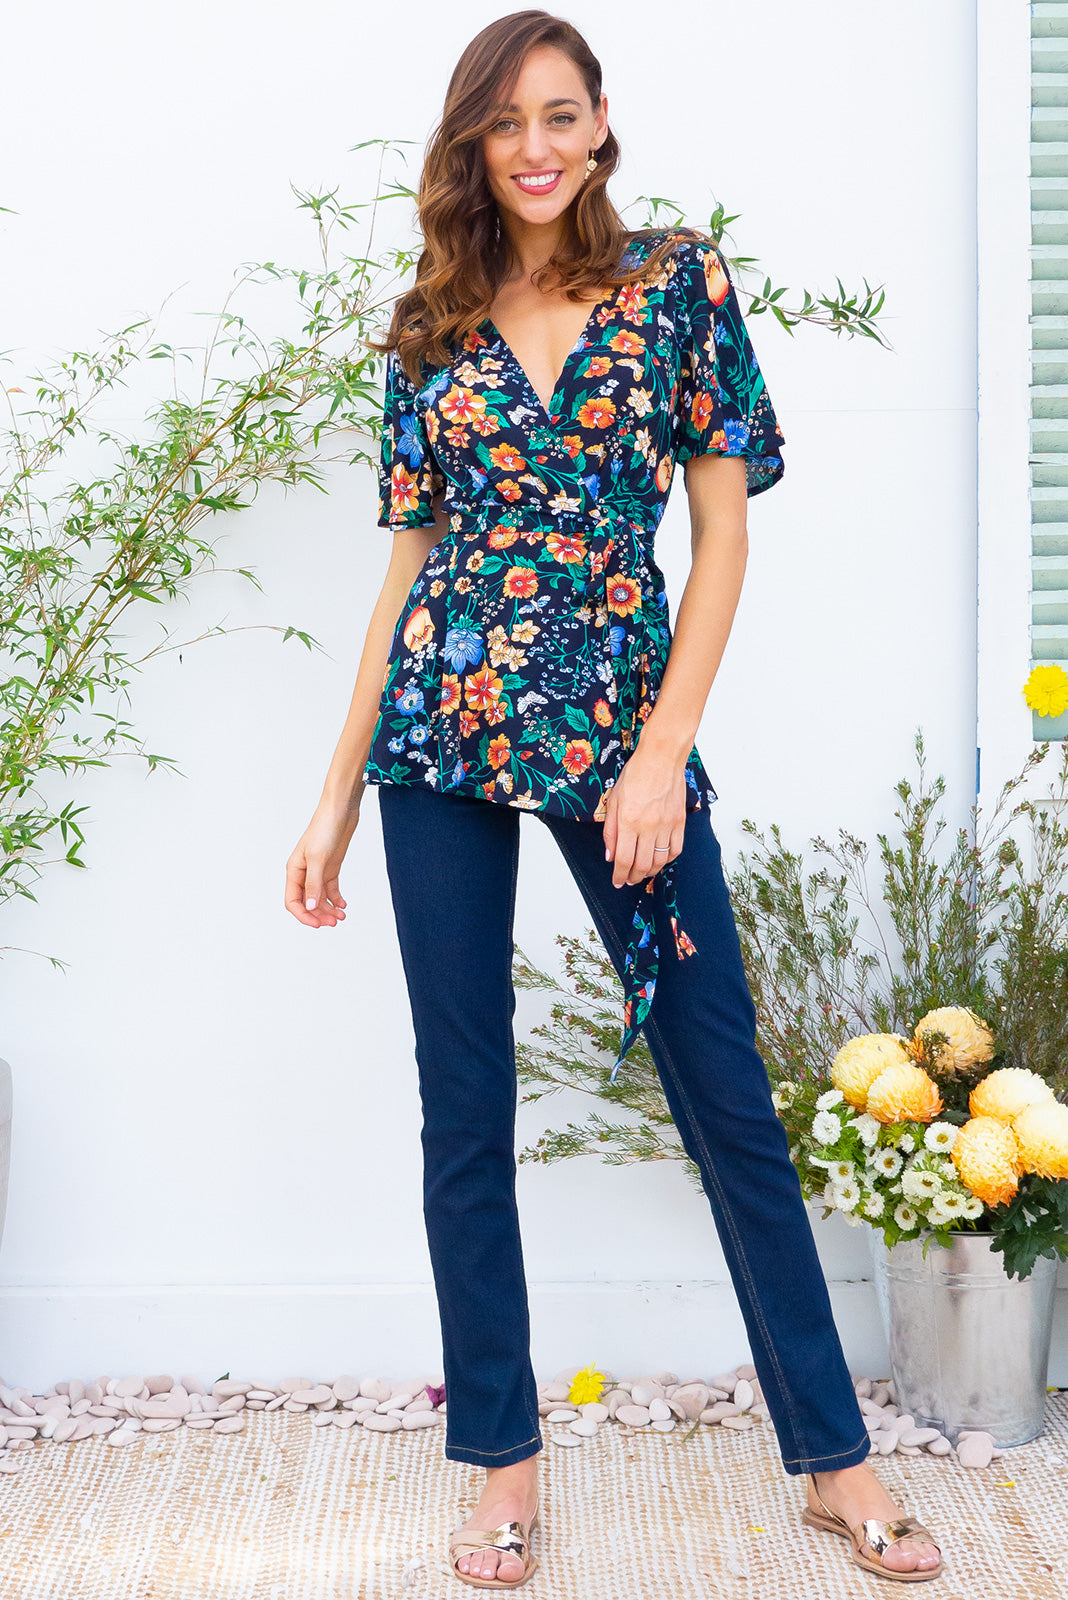 Delta Flight Navy Top in a bright navy floral  print has petal sleeve and wrap around waist